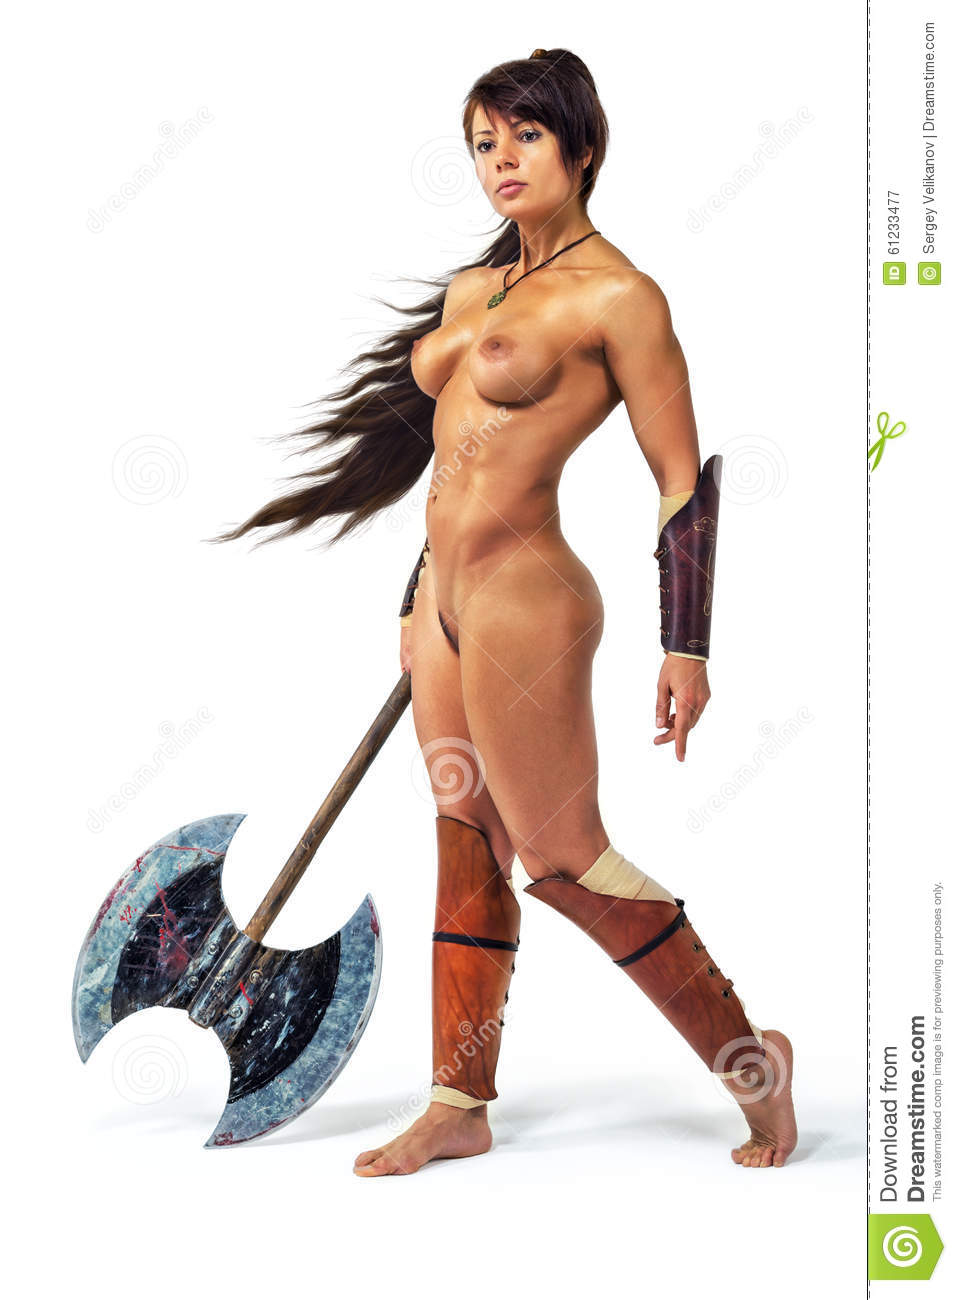 Female warriors erotic pic xxx cute butt